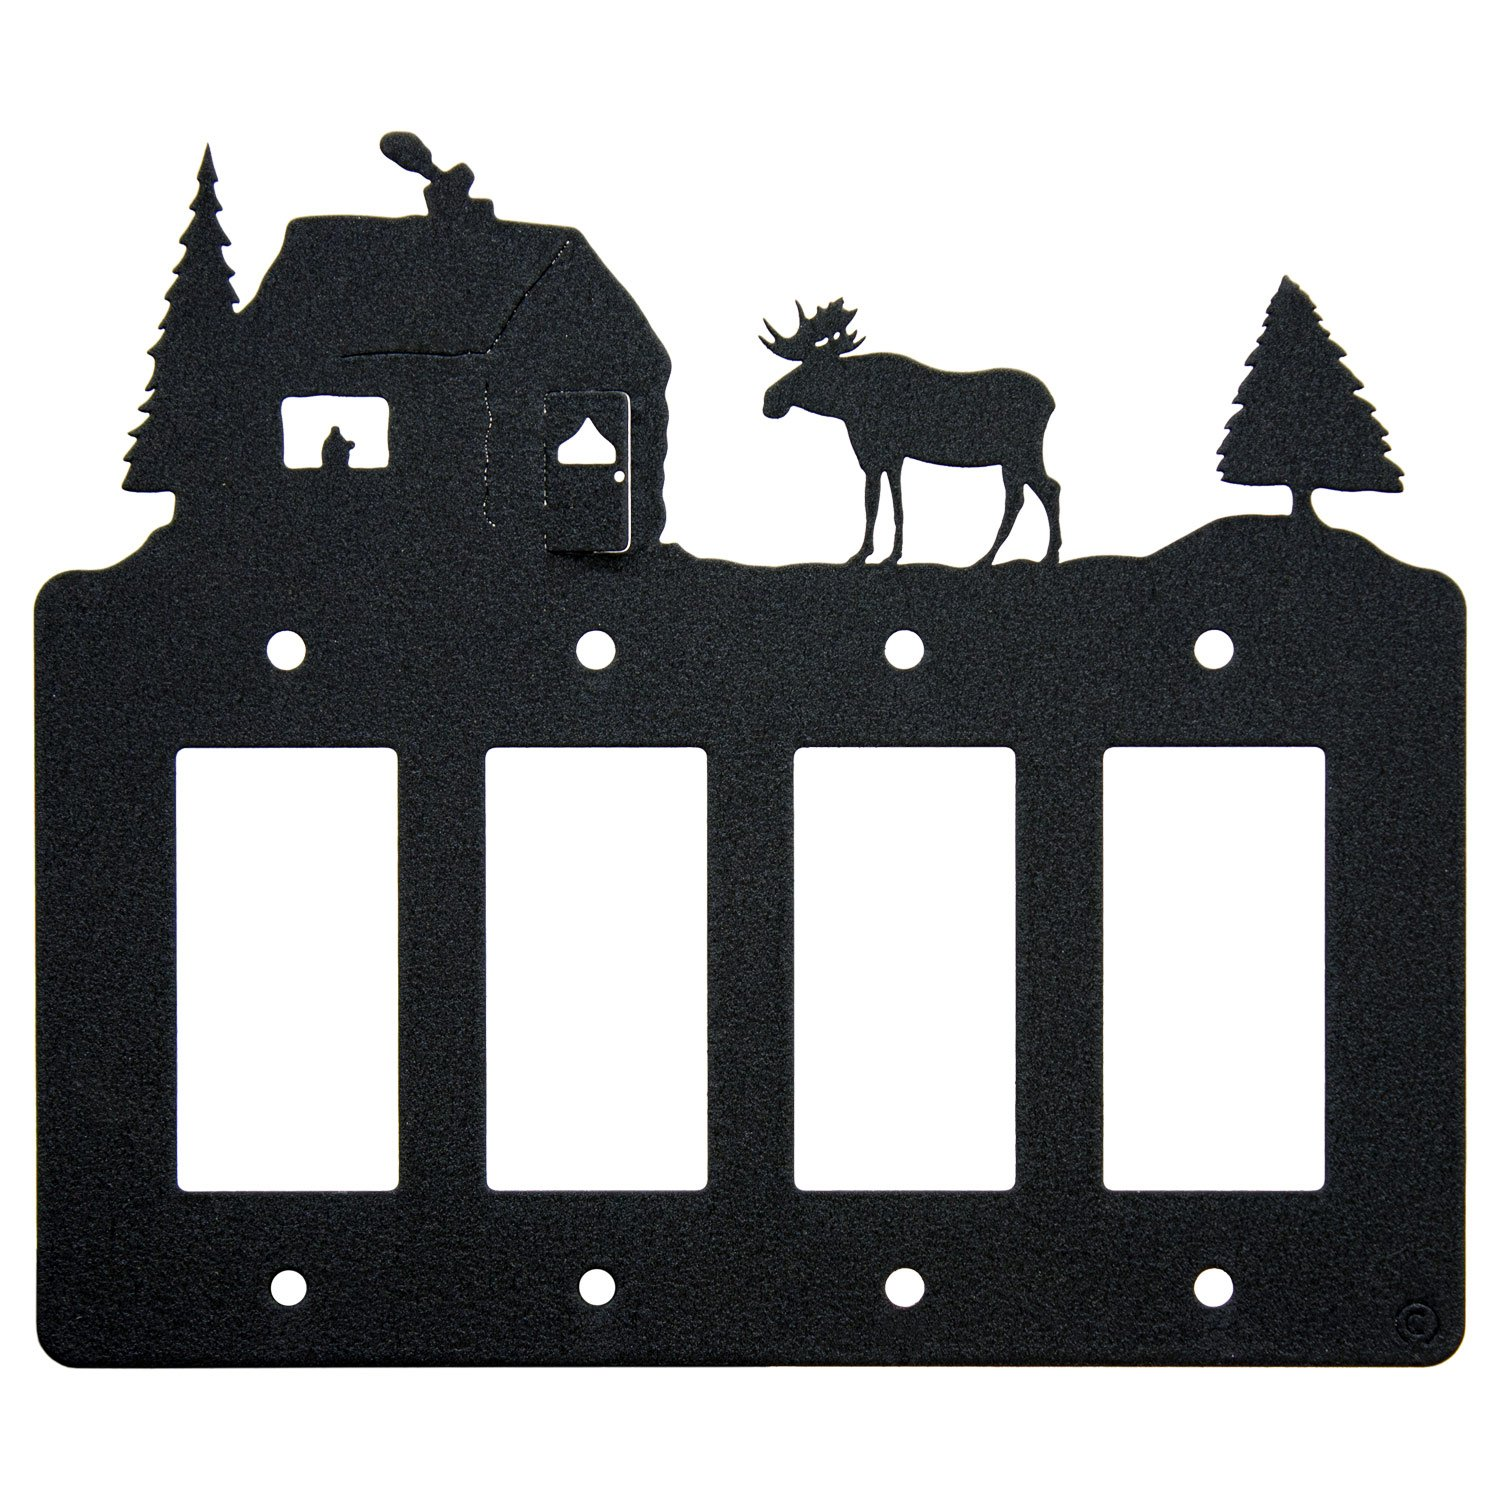 Moose & Cabin Quadruple 4-Gang Rocker Light Switch-GFCI Power Outlet Plate-Cover